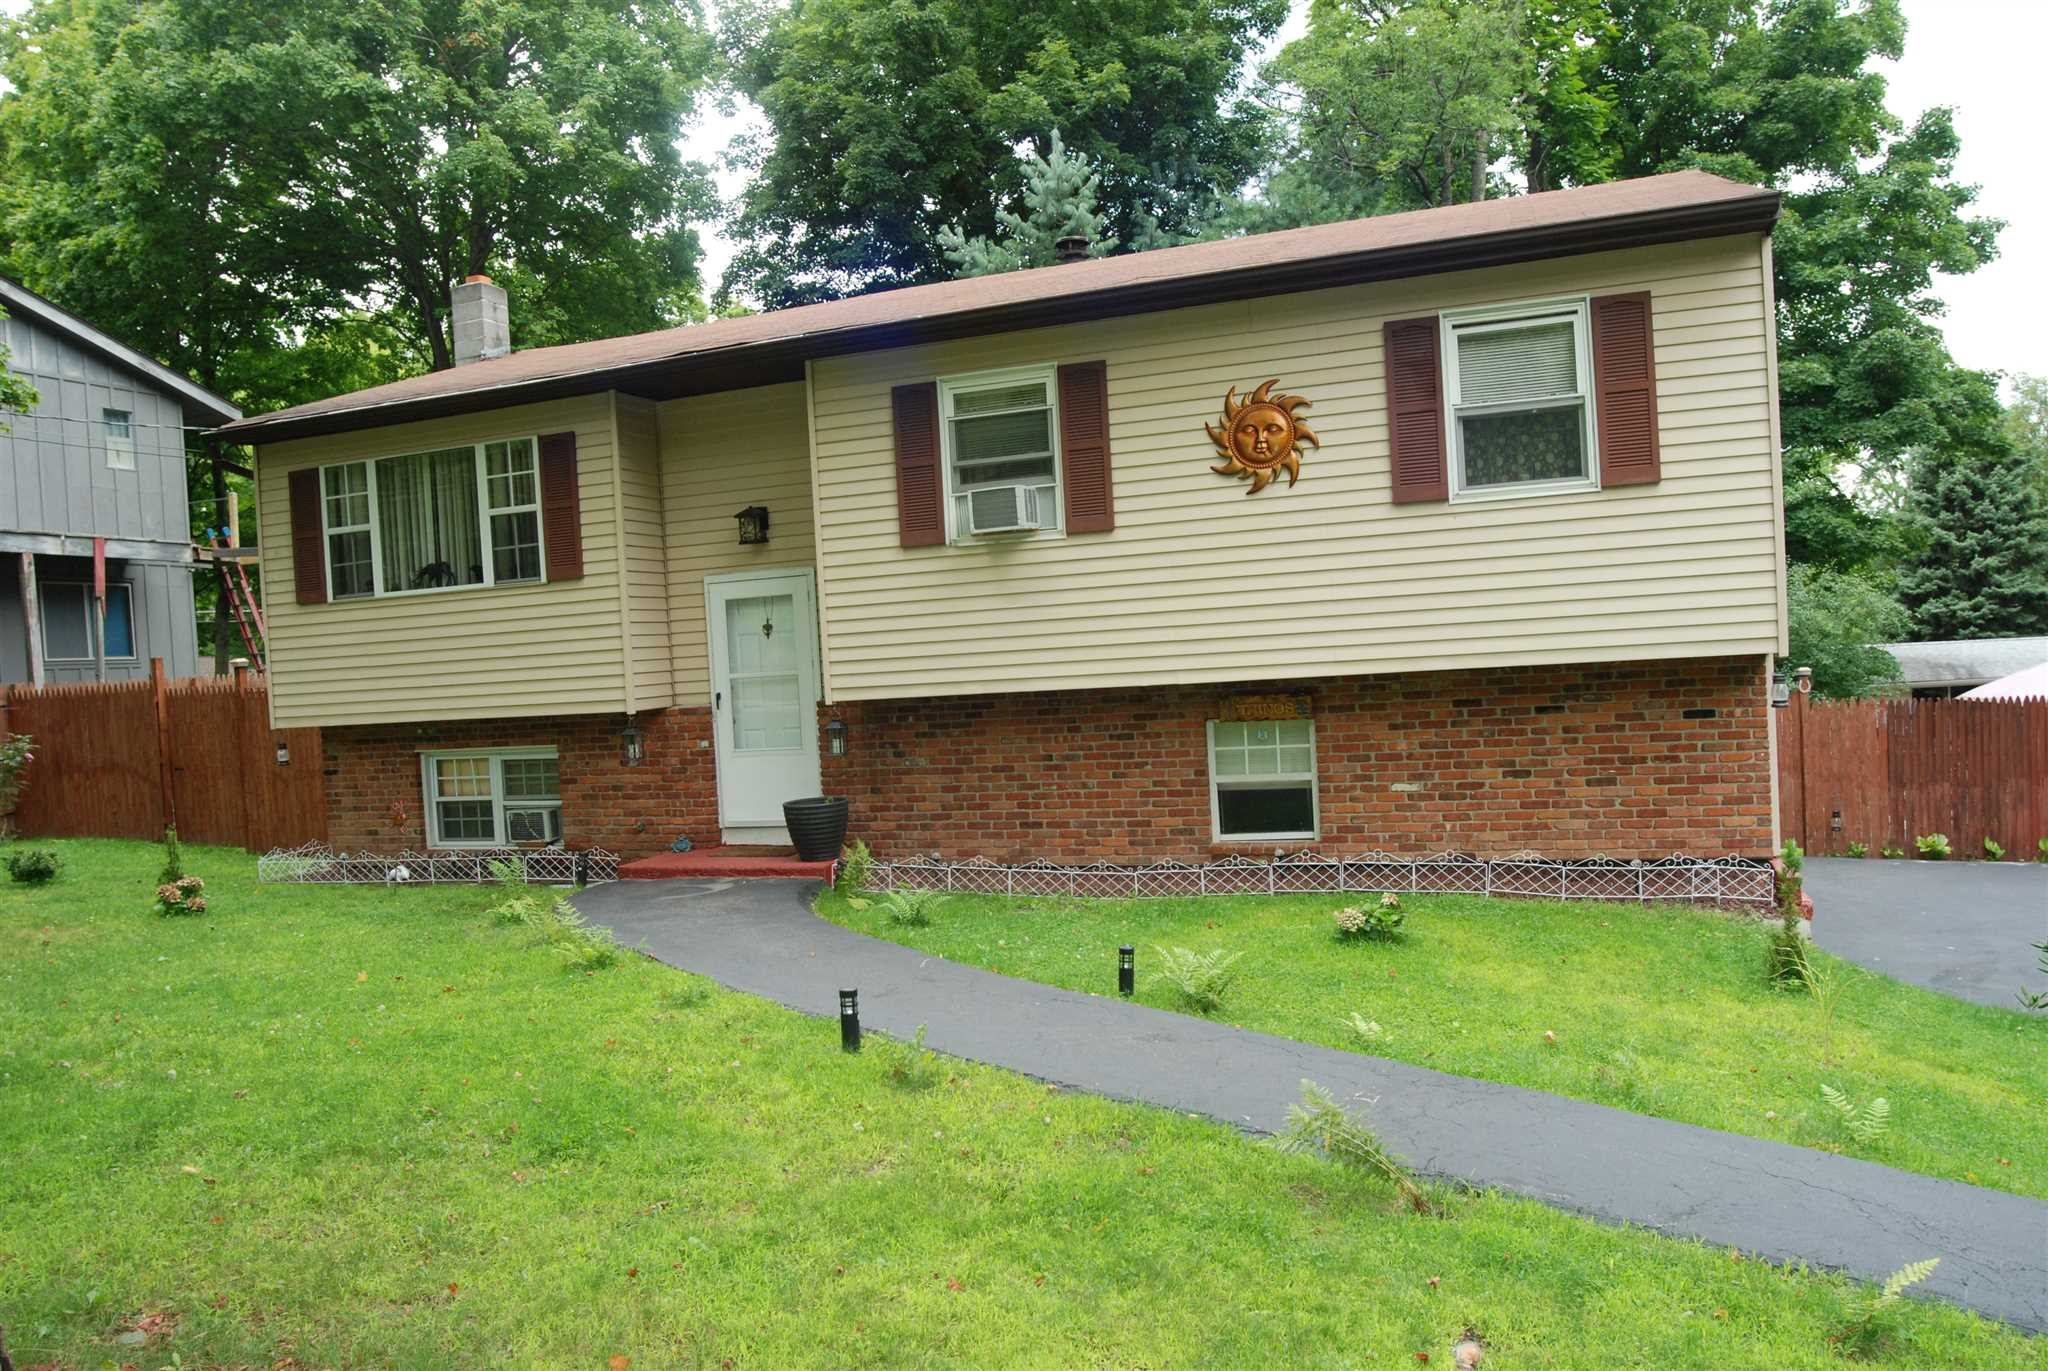 Single Family Home for Sale at 15 WILLOW Road 15 WILLOW Road Fishkill, New York 12508 United States